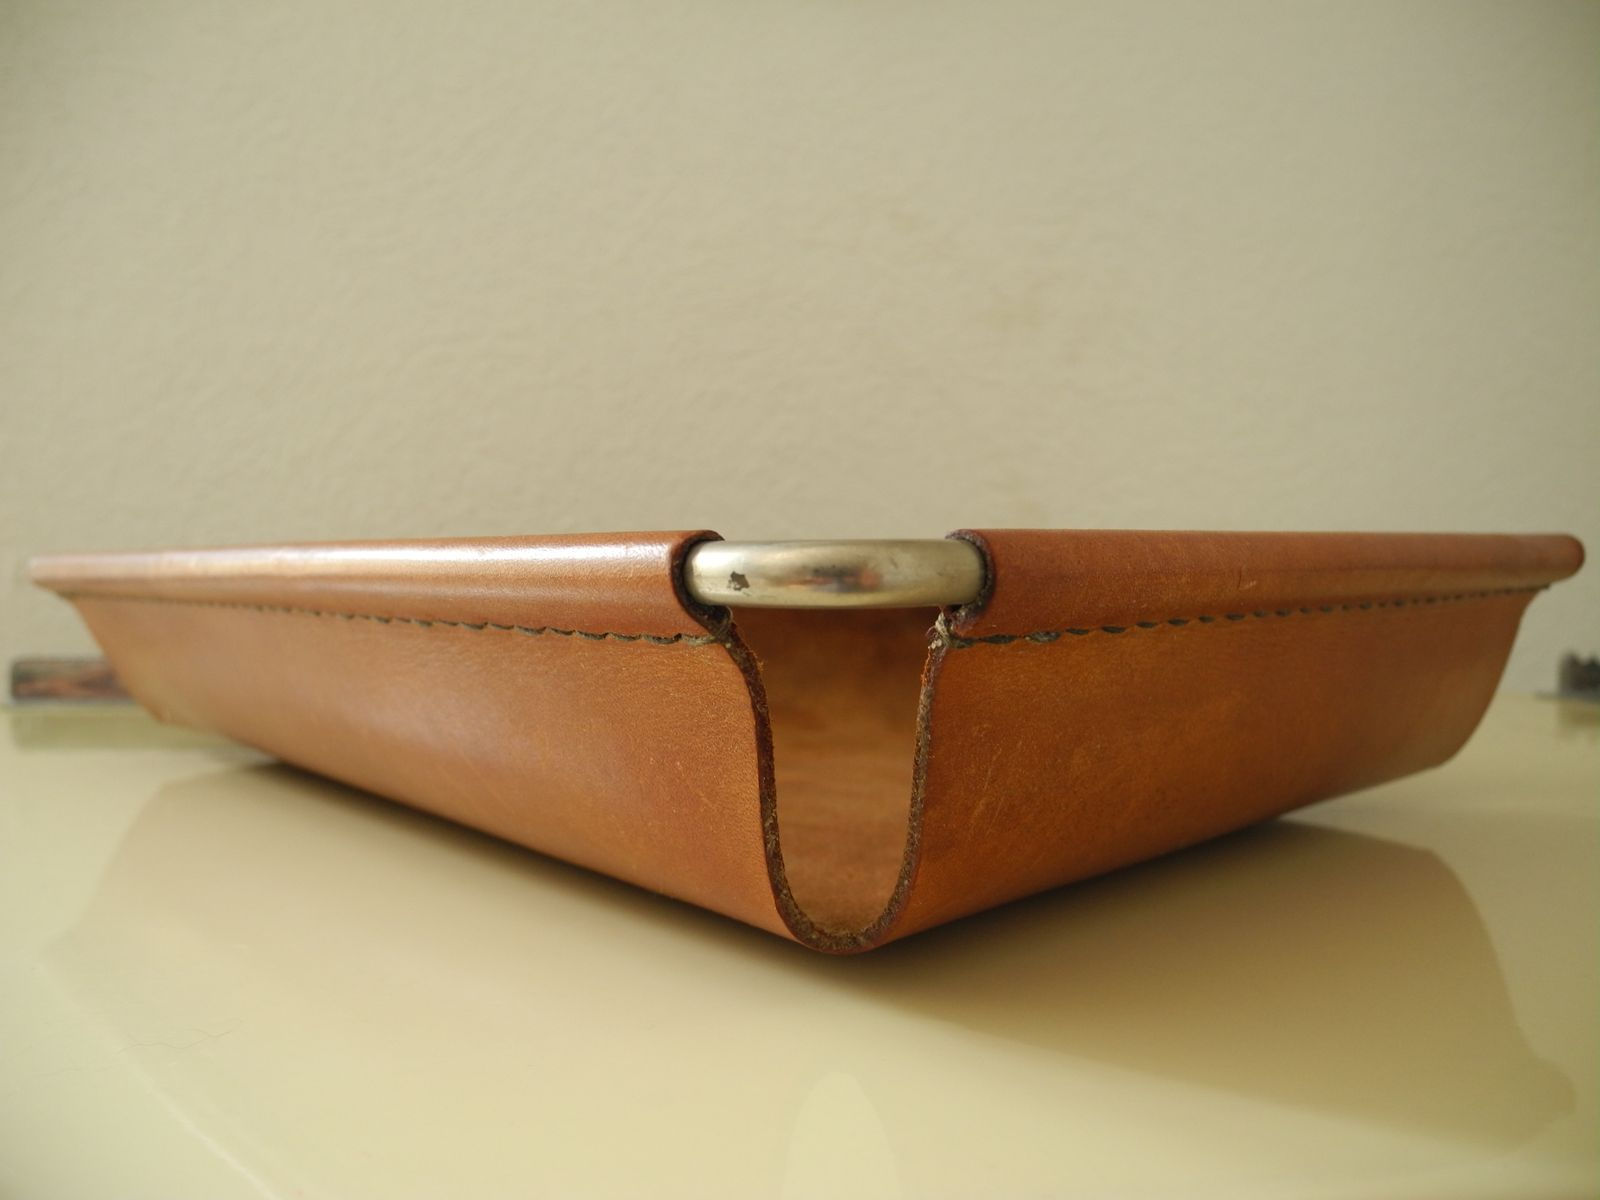 Vintage Cognac Leather Tray By Carl Aub 246 Ck For Sale At Pamono